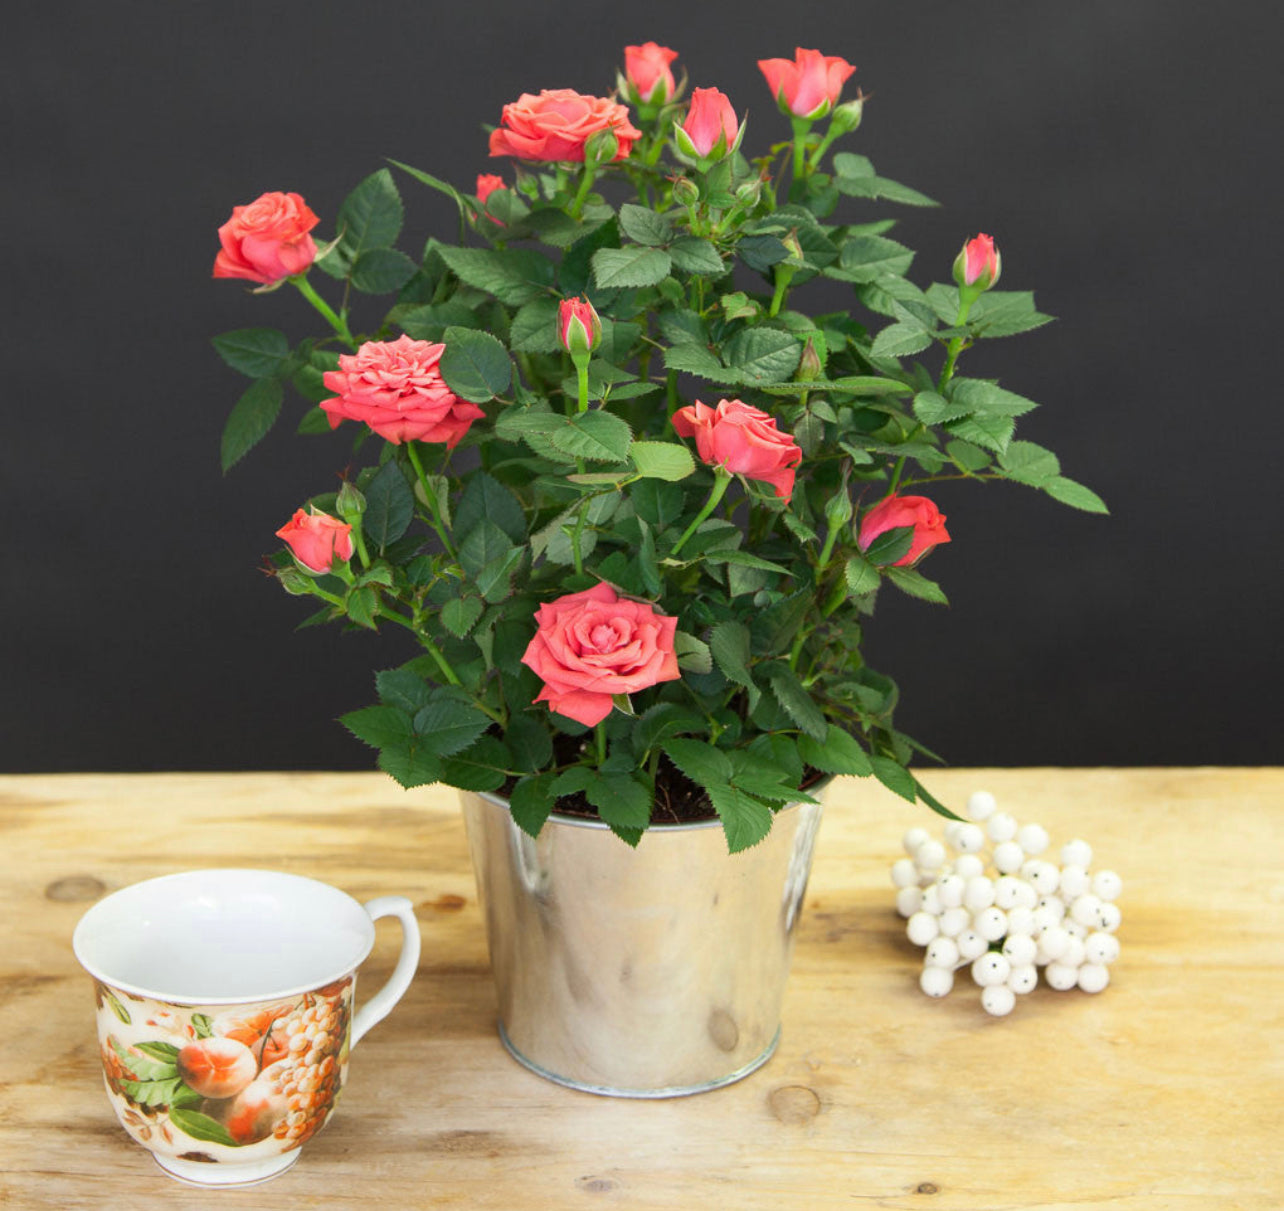 Cheap flowers valueflora uk next day delivery bouquets order online yes you can add alt tags too izmirmasajfo